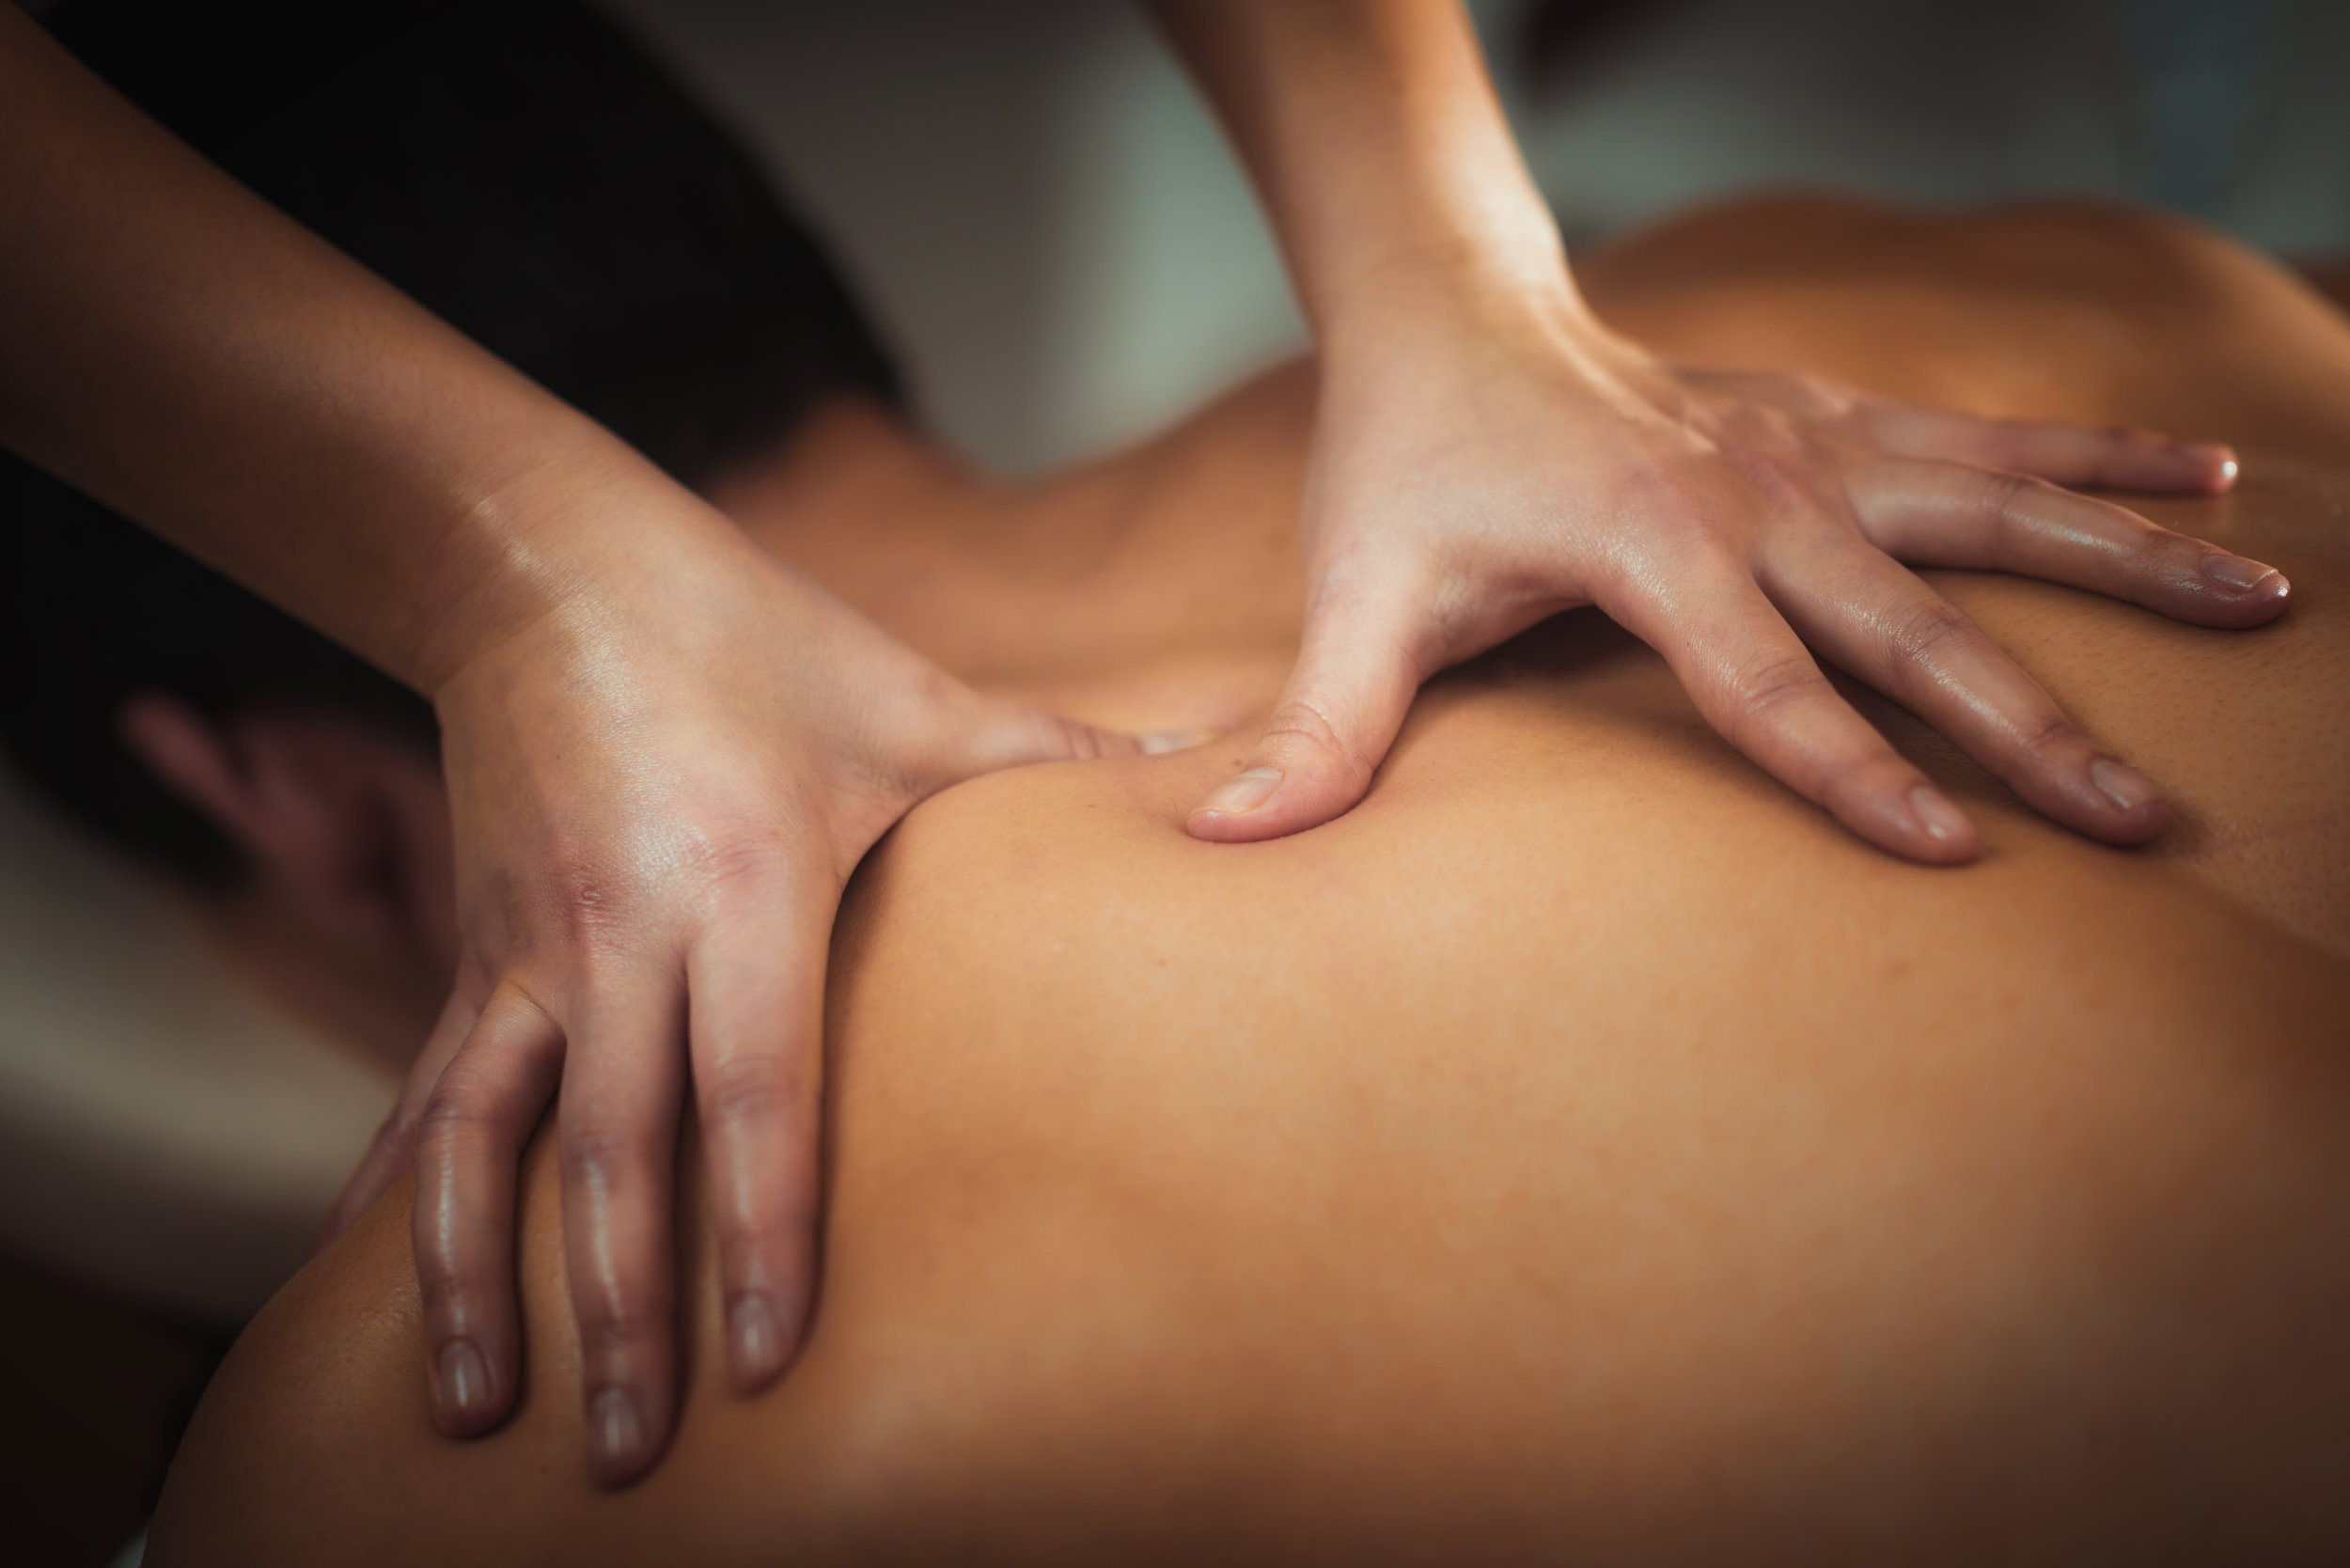 Healing treatments - Find out about the heaing treatments Aoife offers for pain, injury, recovery and more.